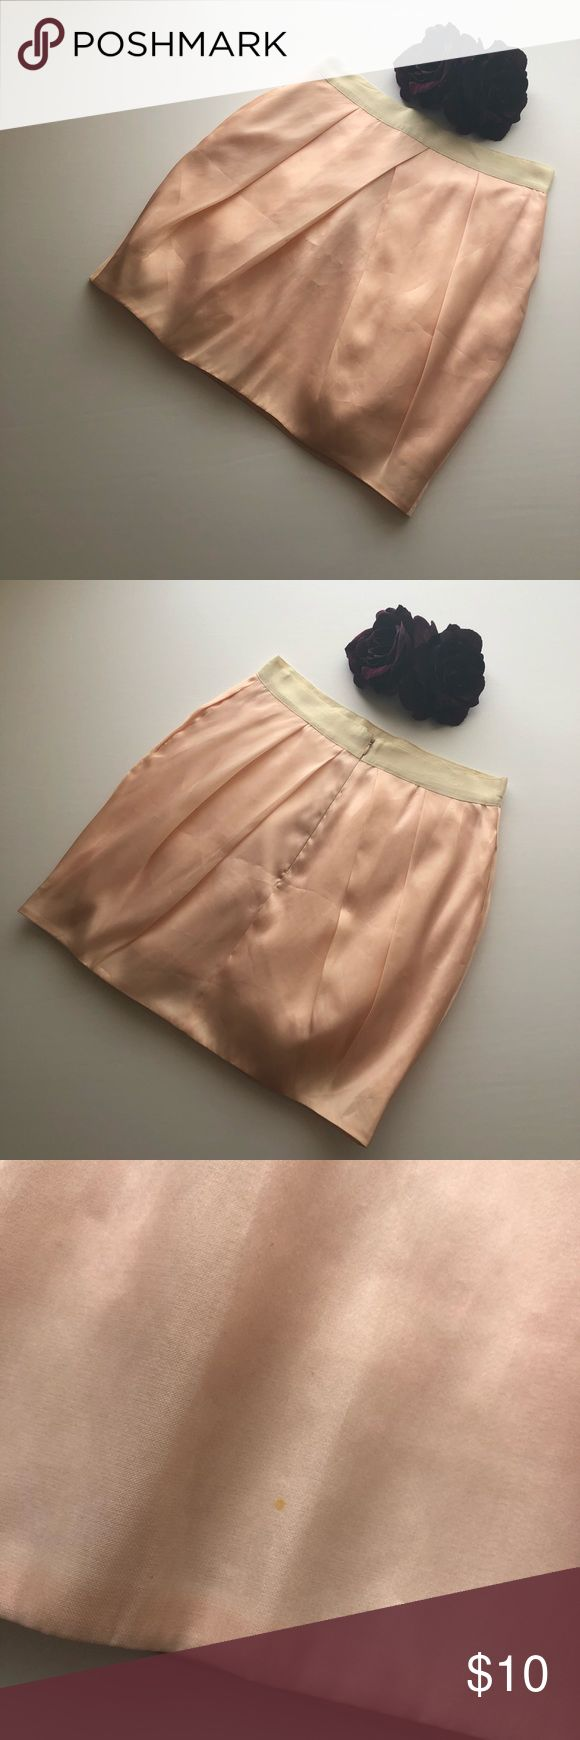 Peach Tulip Skirt Re-posh. Beautiful peach/ pale pink skirt that I bought off Posh a couple months ago. Never worn by me. There are some slight flaws as pictured. There is no label inside besides the size tag. Sold to me as Jcrew. Skirts